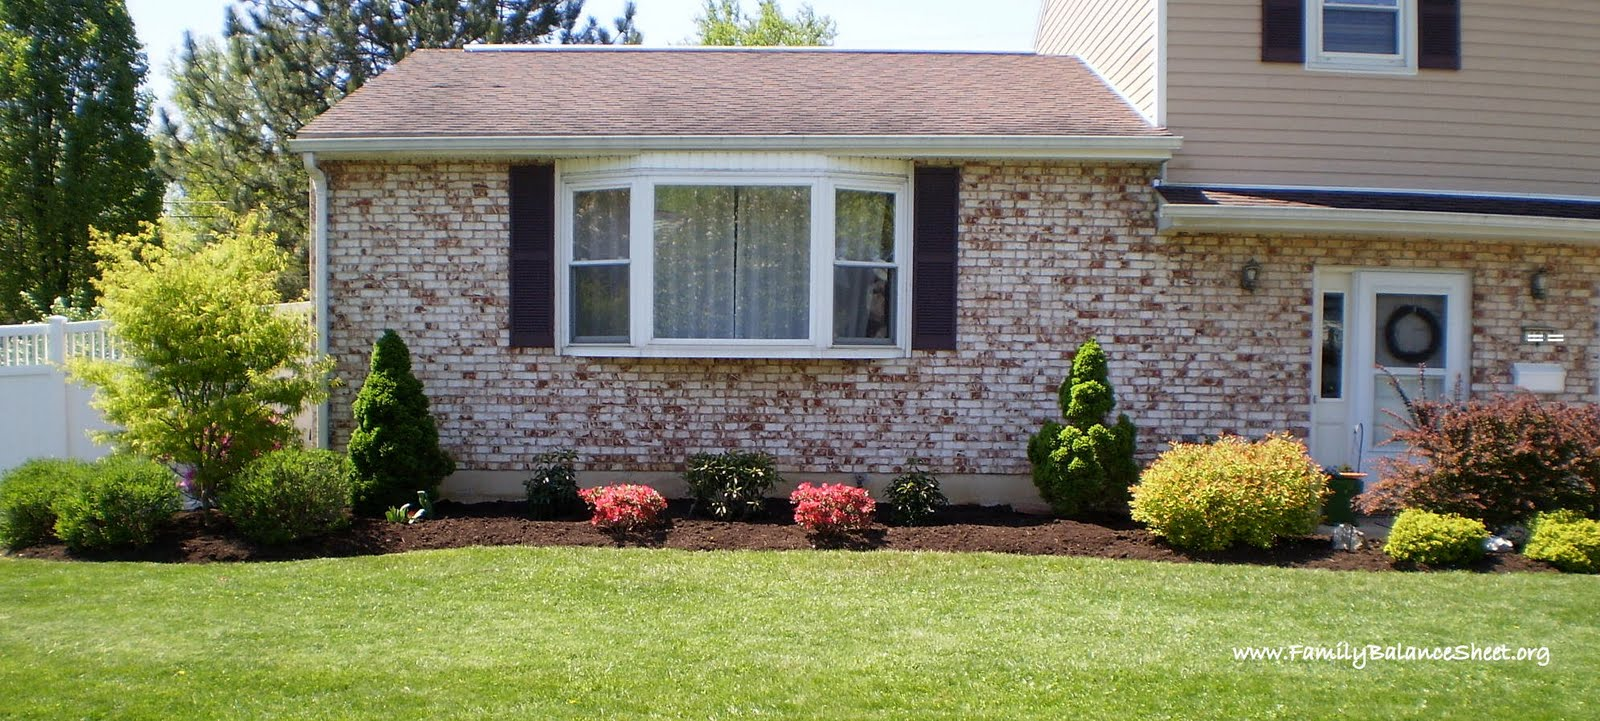 15 tips to help you design your front yard save money too for Home front yard design